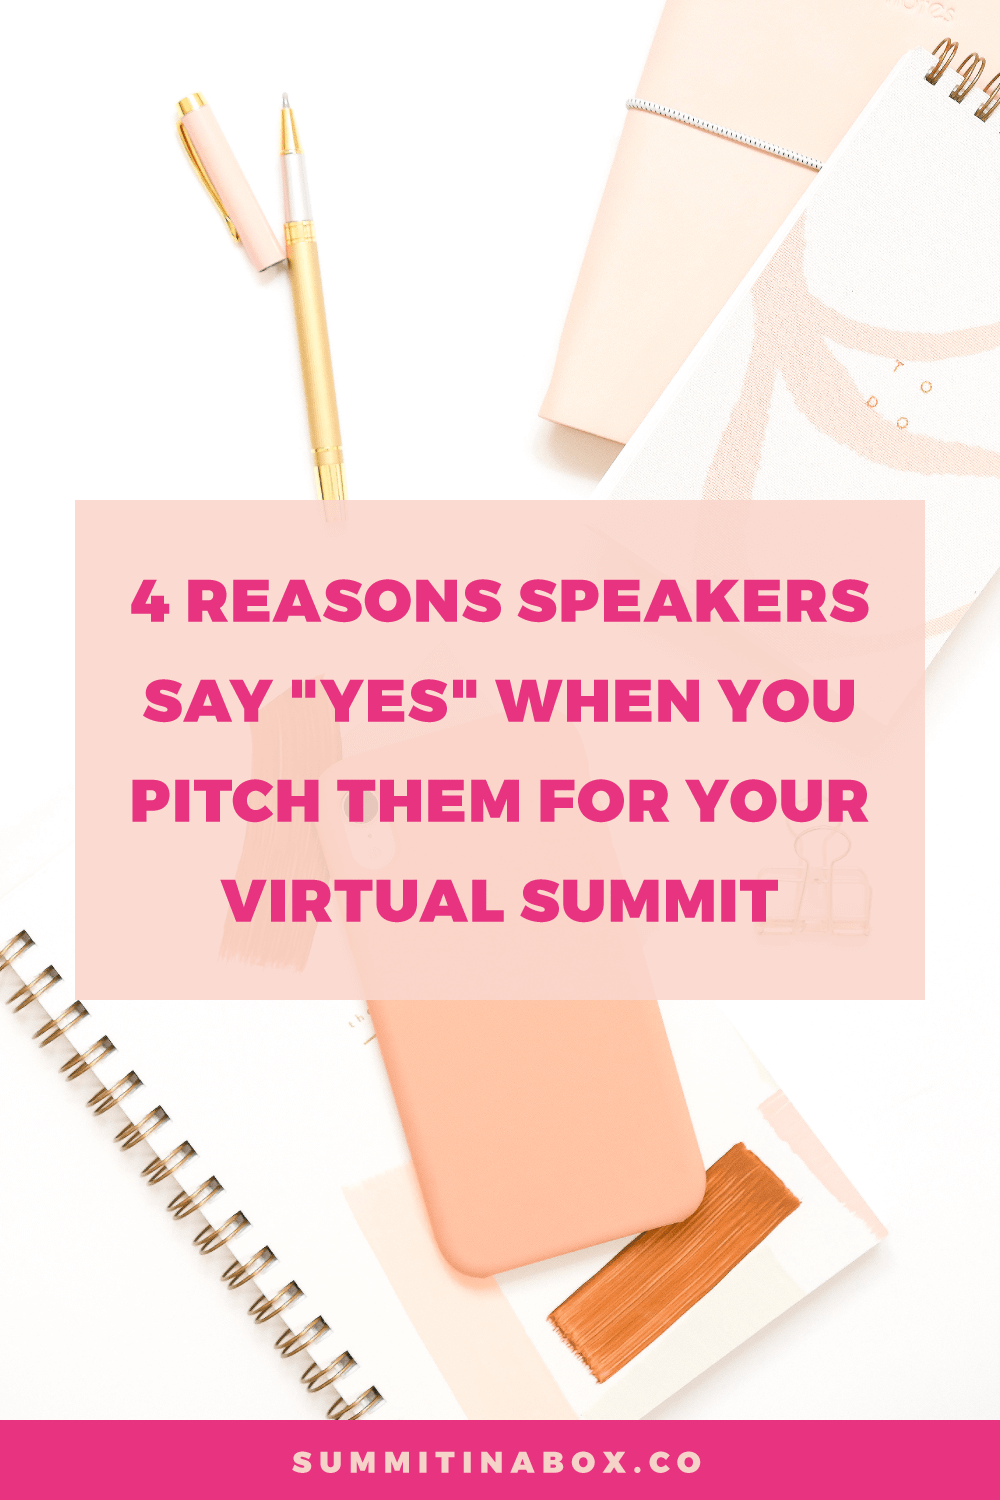 Intimidated by pitching virtual summit speakers? Generally, they're not interested in the size of your list. Here are the top reasons that speakers say yes!